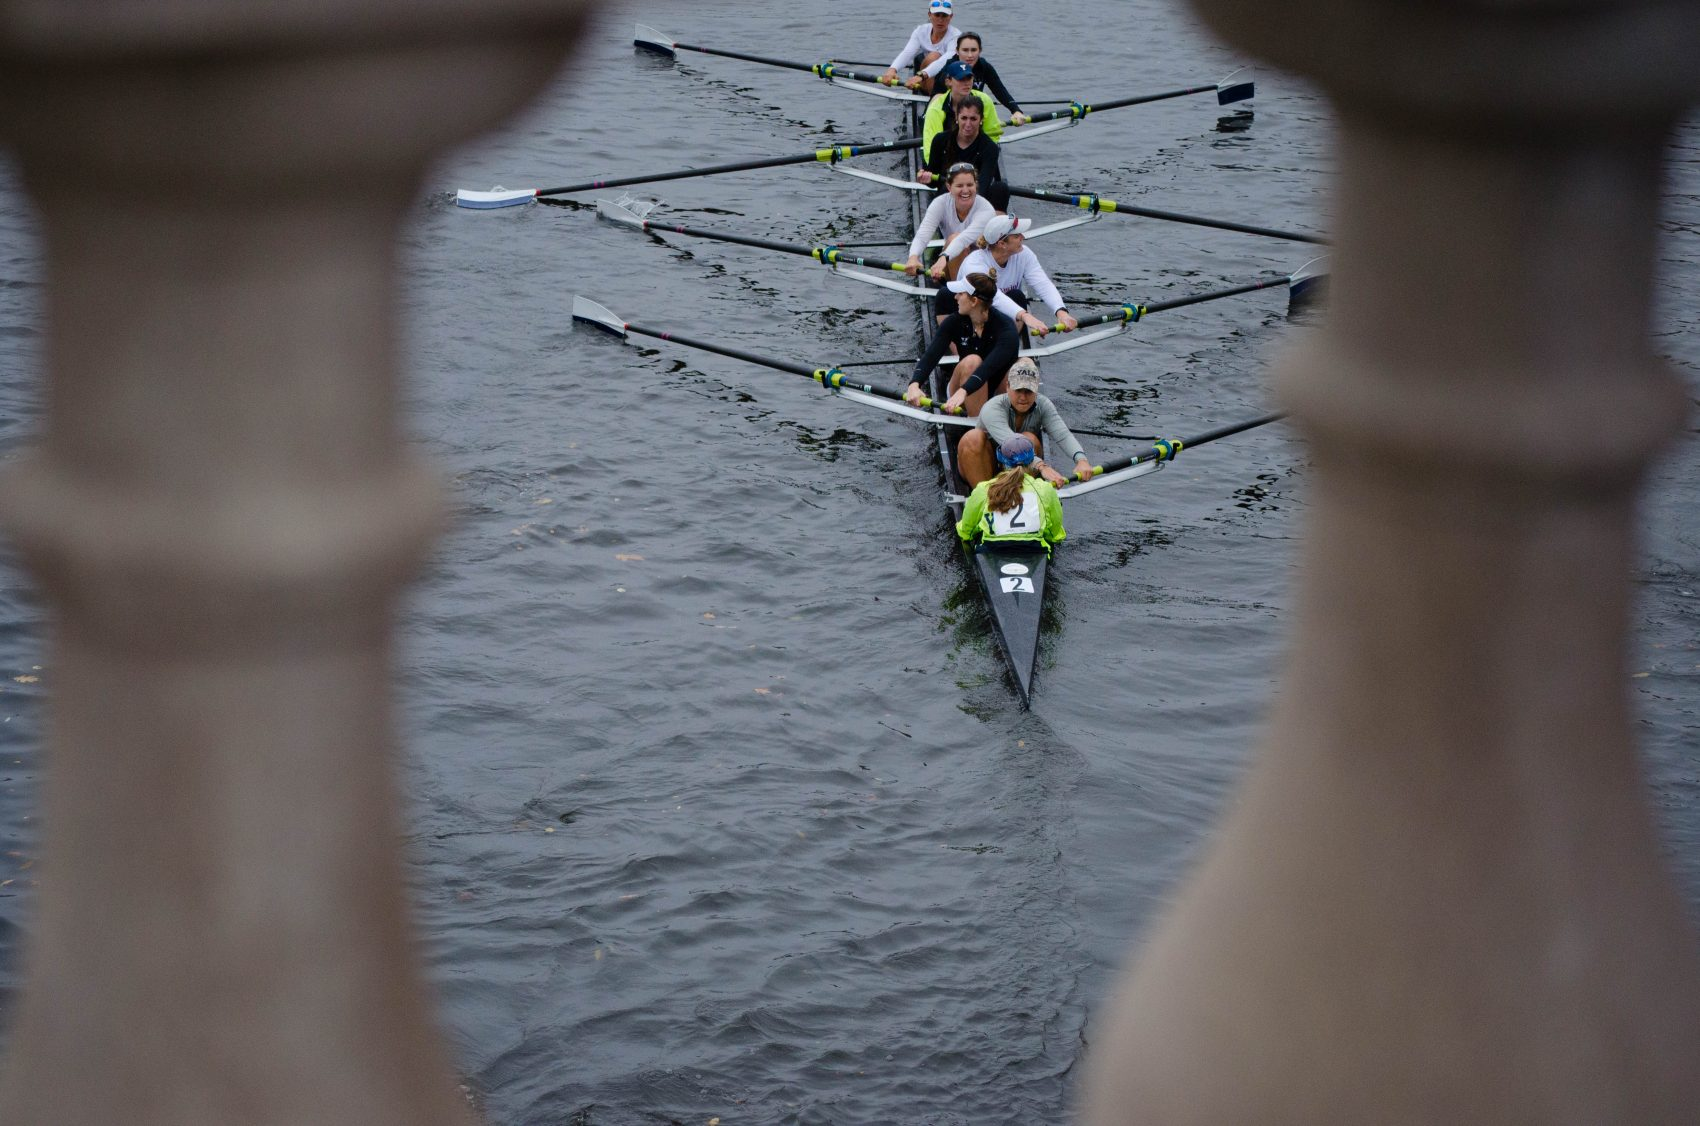 Boats pass under the Weeks Footbridge on their way to the starting line for the Head of the Charles. (Elizabeth Gillis/WBUR)